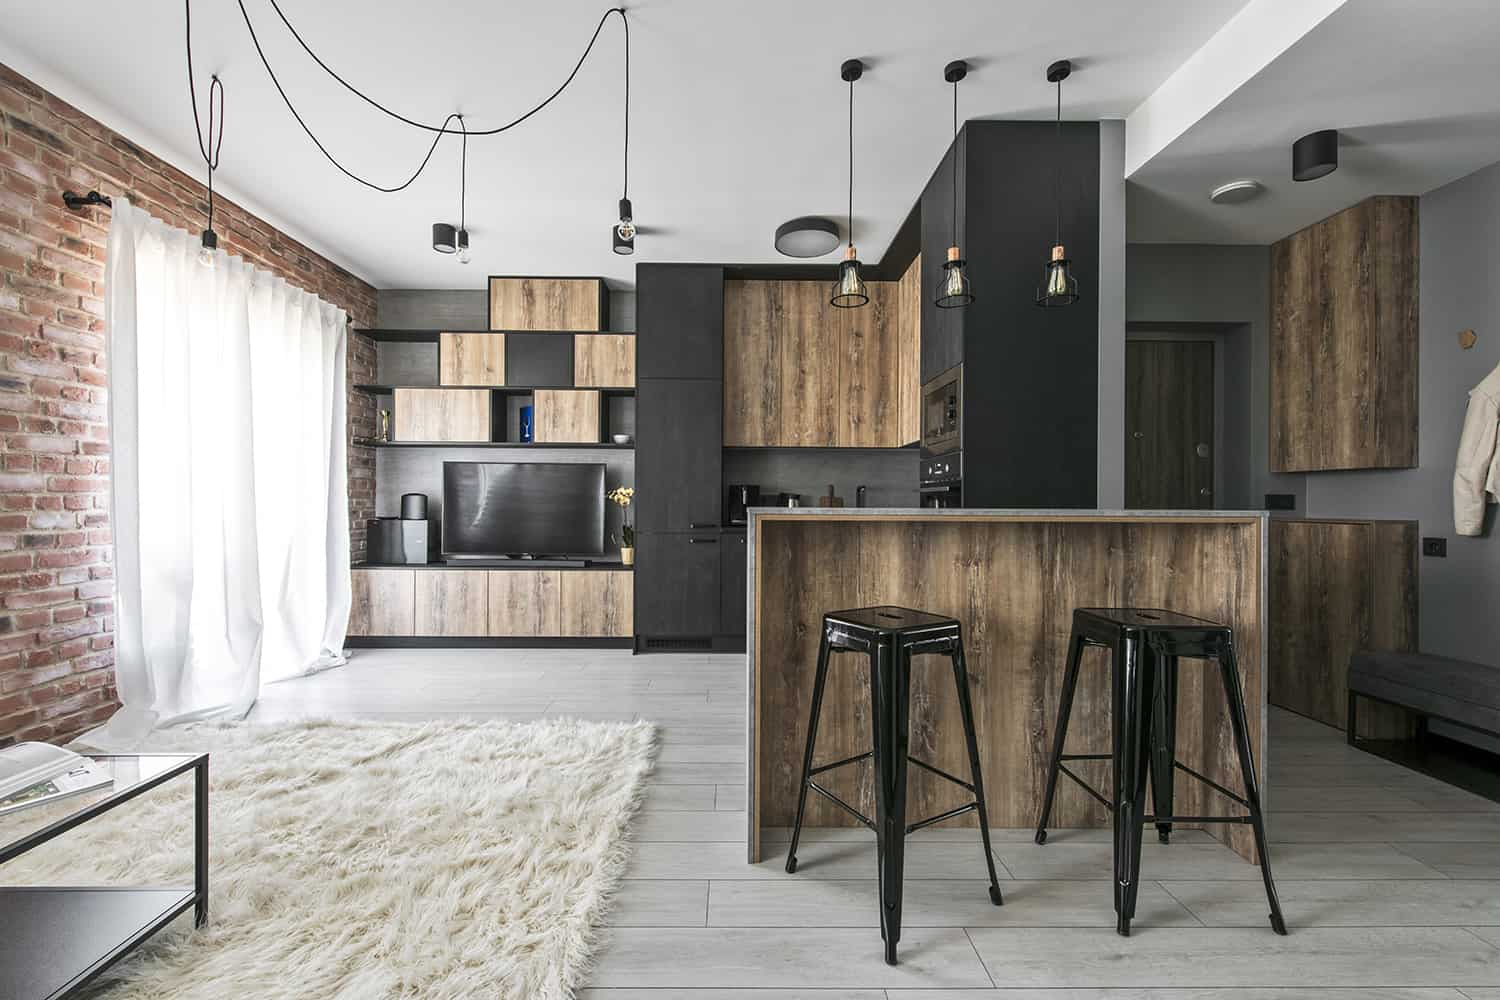 Small Industrial Apartment In Lithuania Gets An Inspiring Update